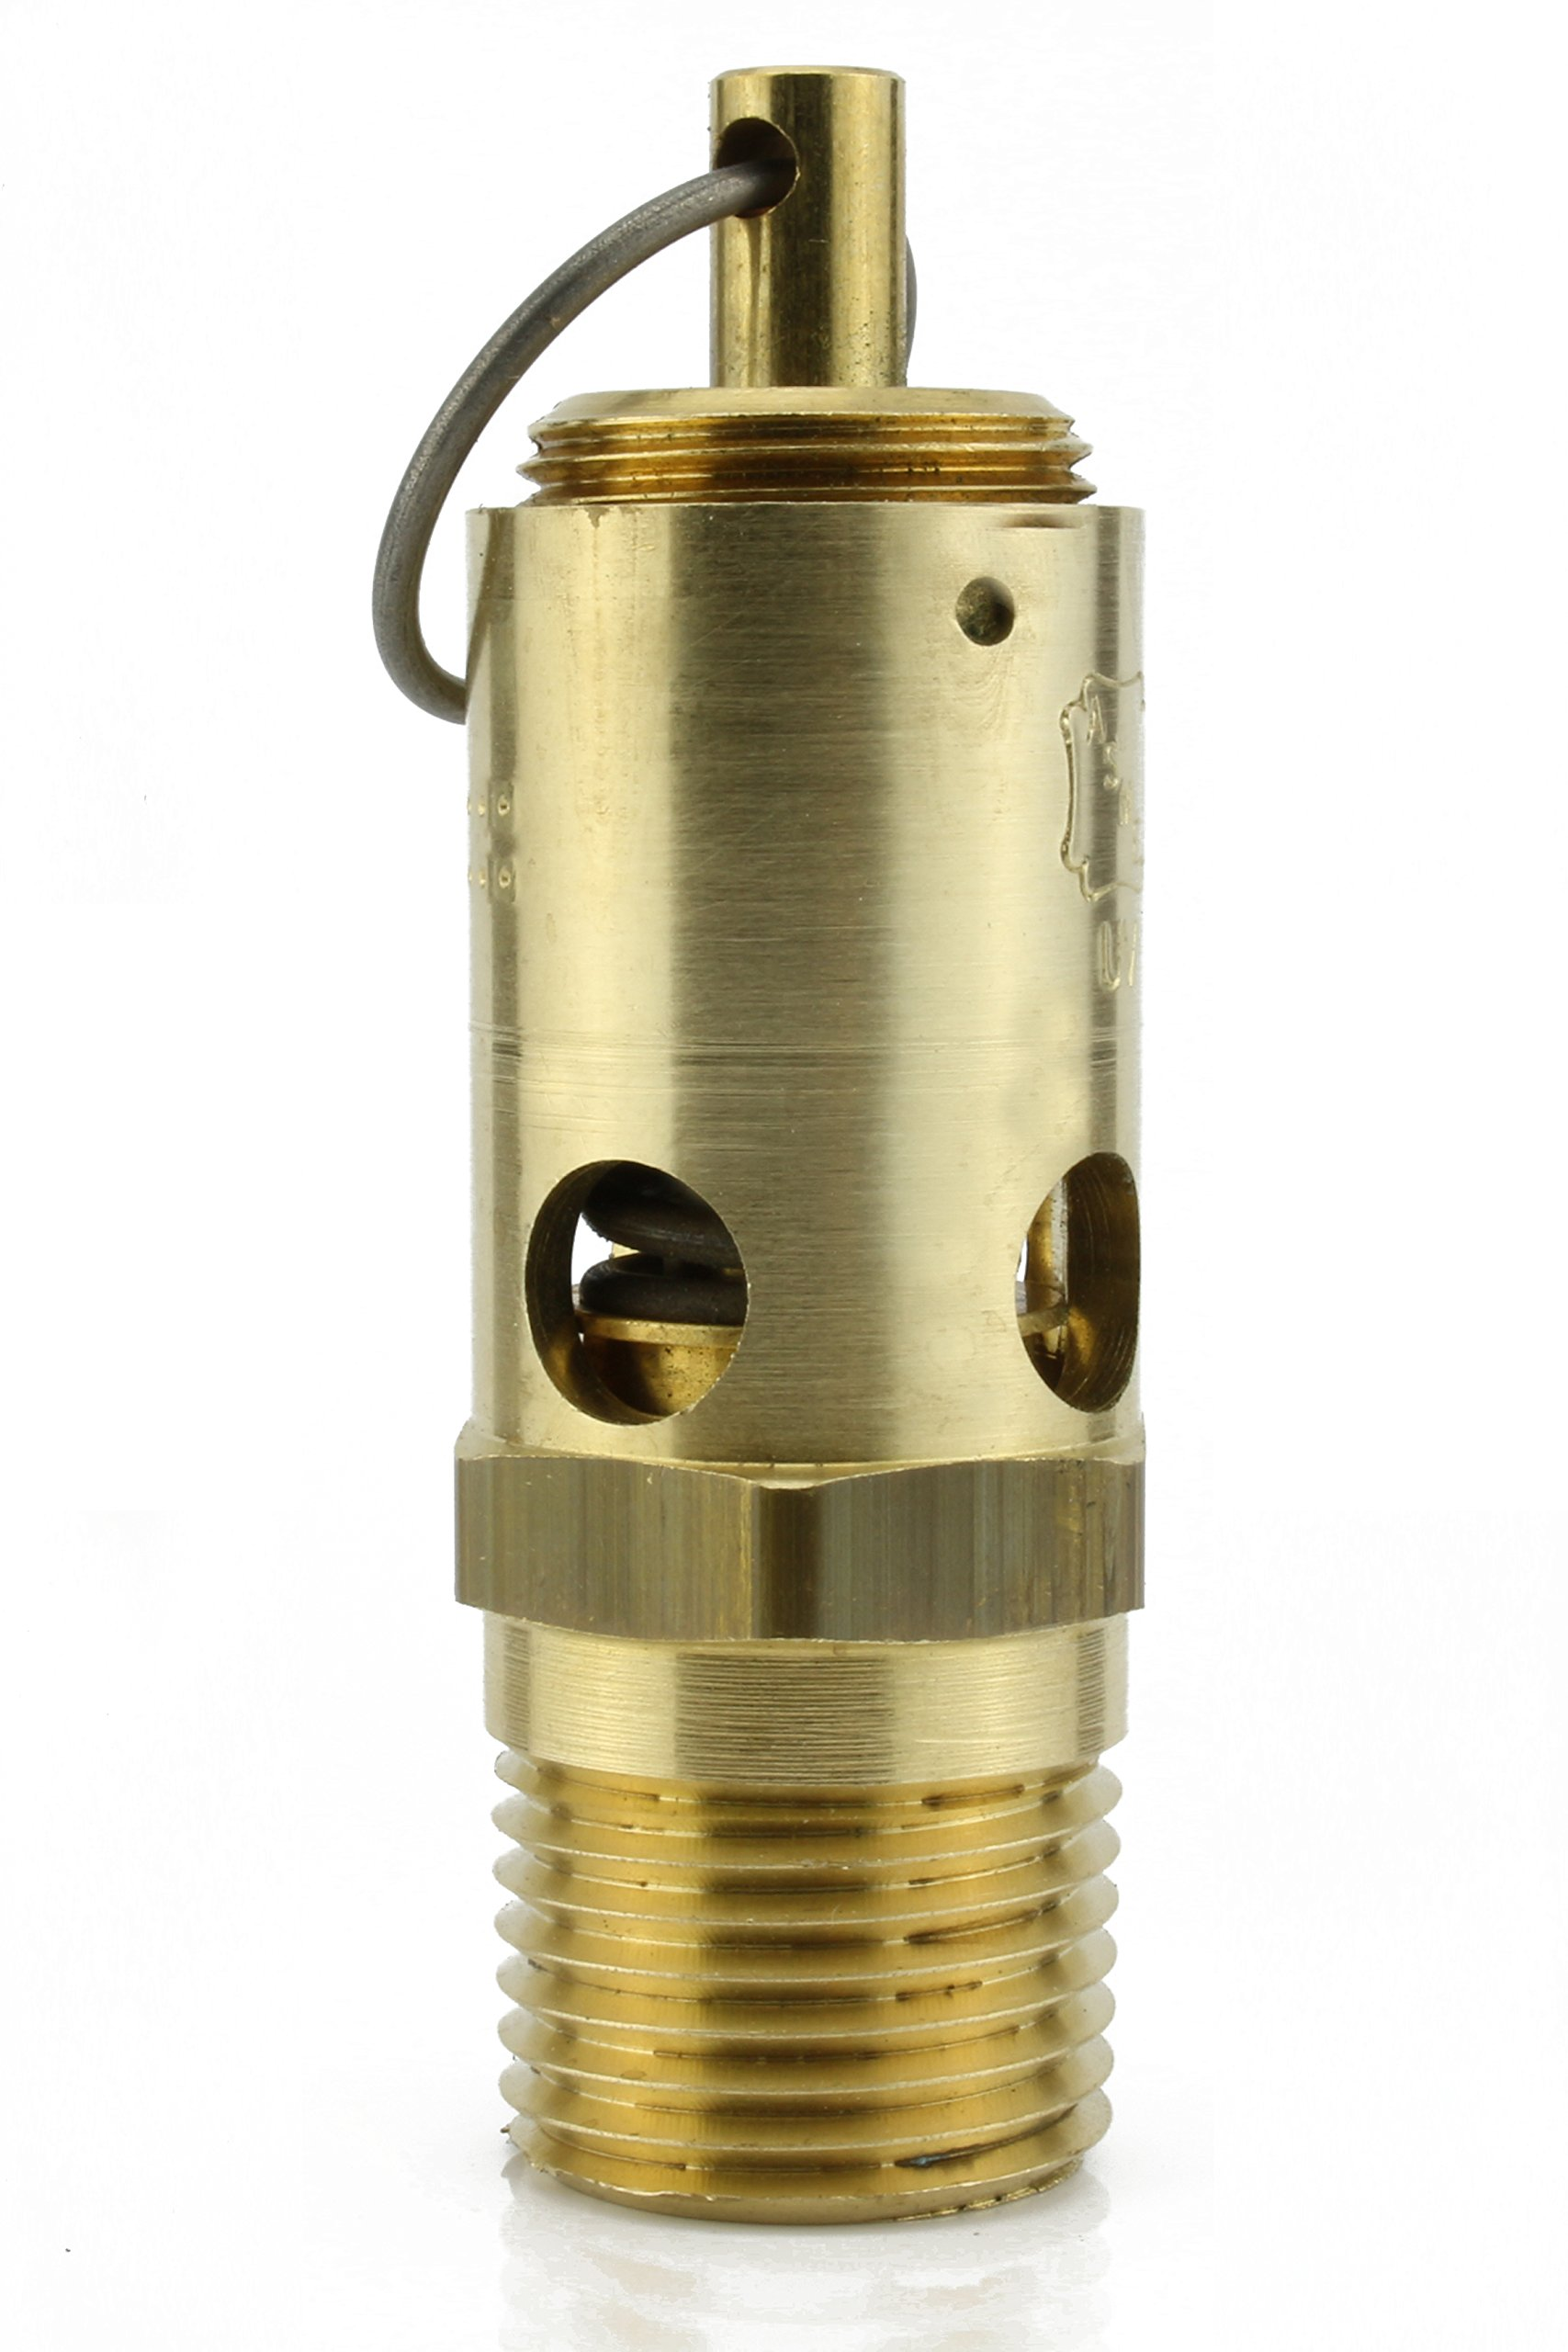 conrader New 1/2'' NPT 150 PSI Air Compressor Safety Relief Pressure Valve Tank Pop Off by conrader (Image #1)